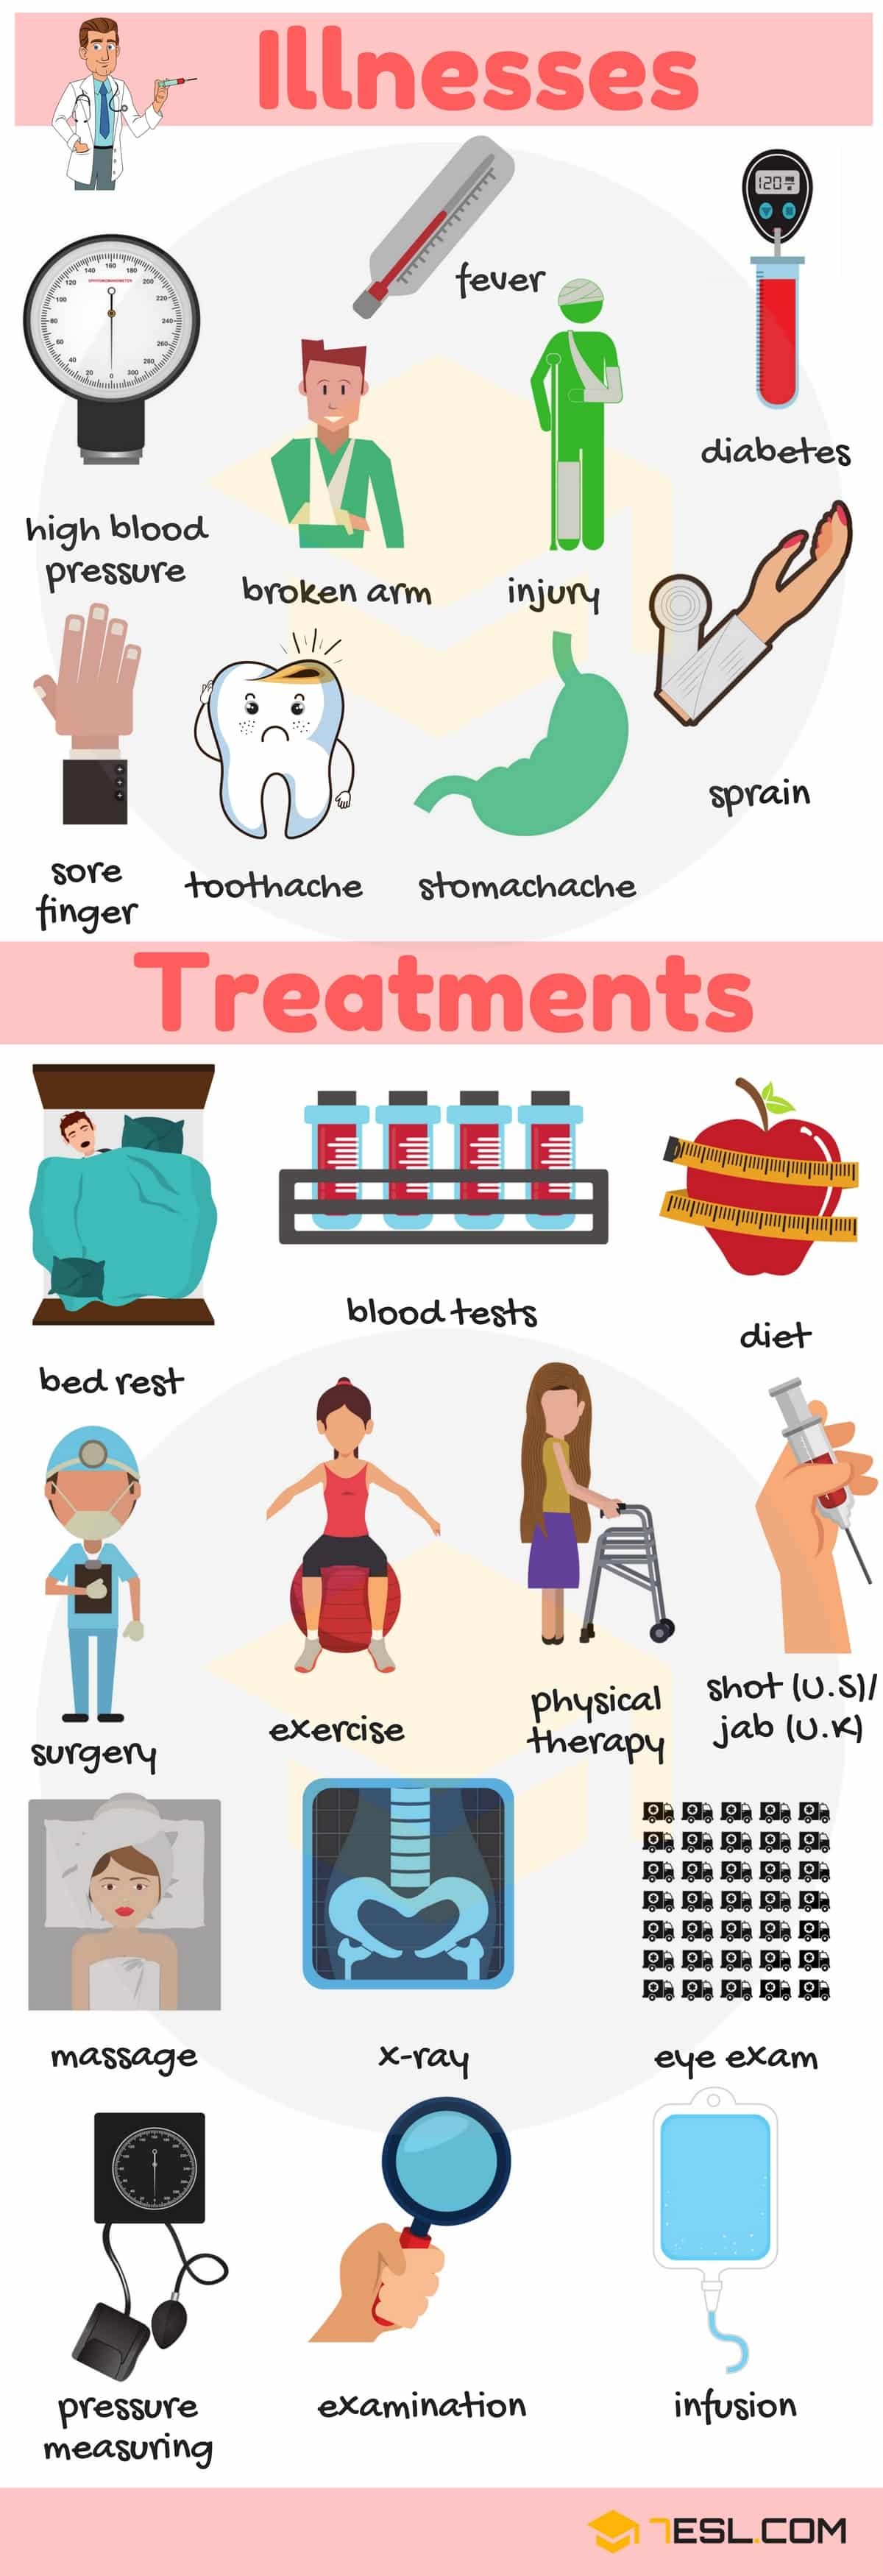 Common Illnesses and Treatments | Picture